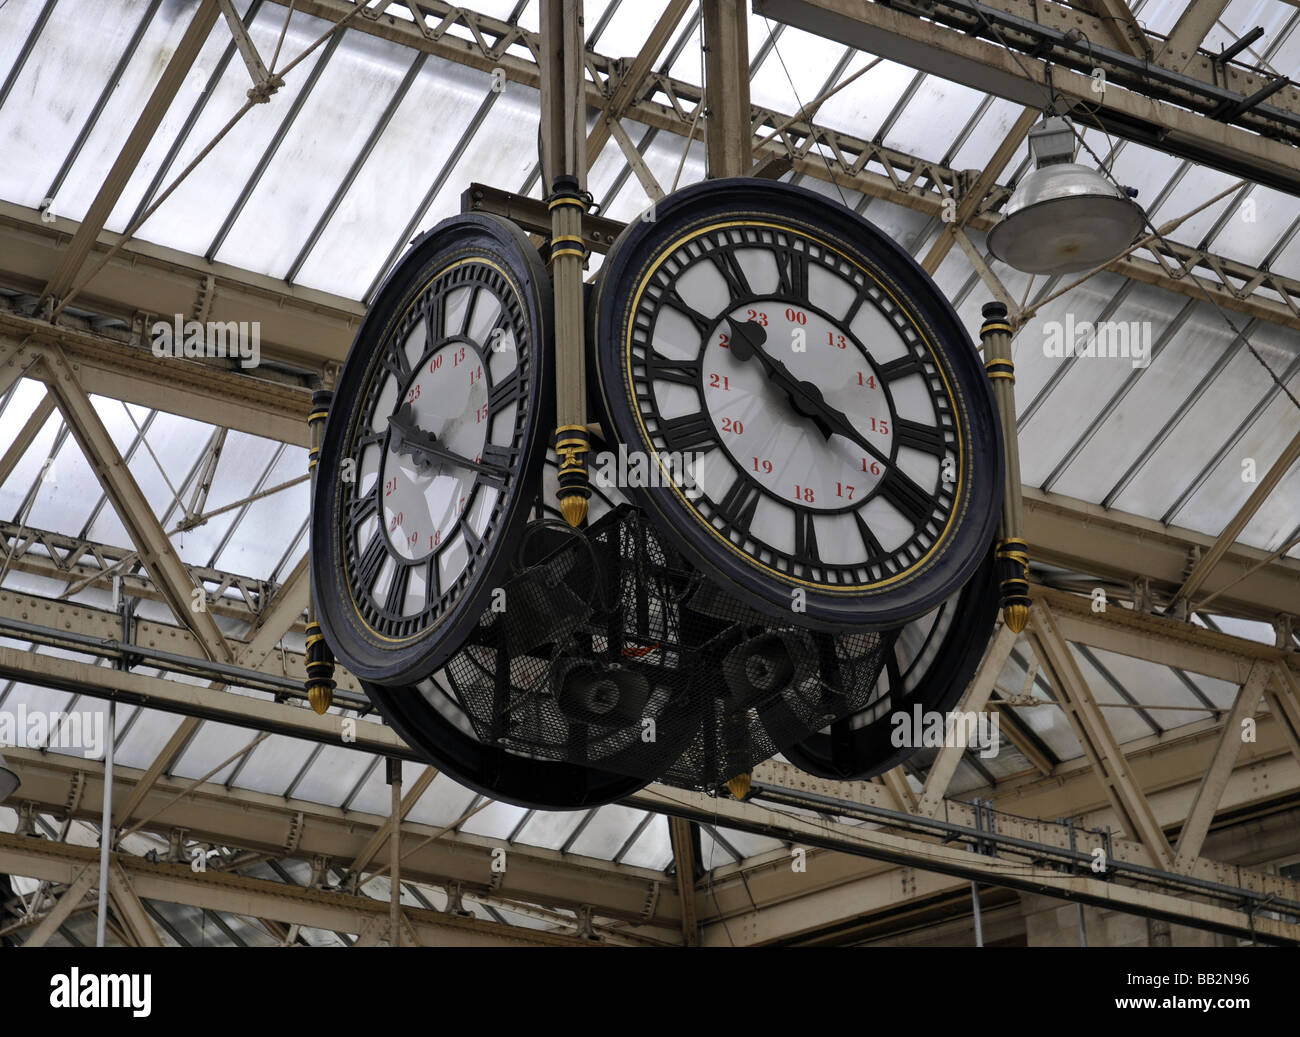 Waterloo Station Clock - Stock Image